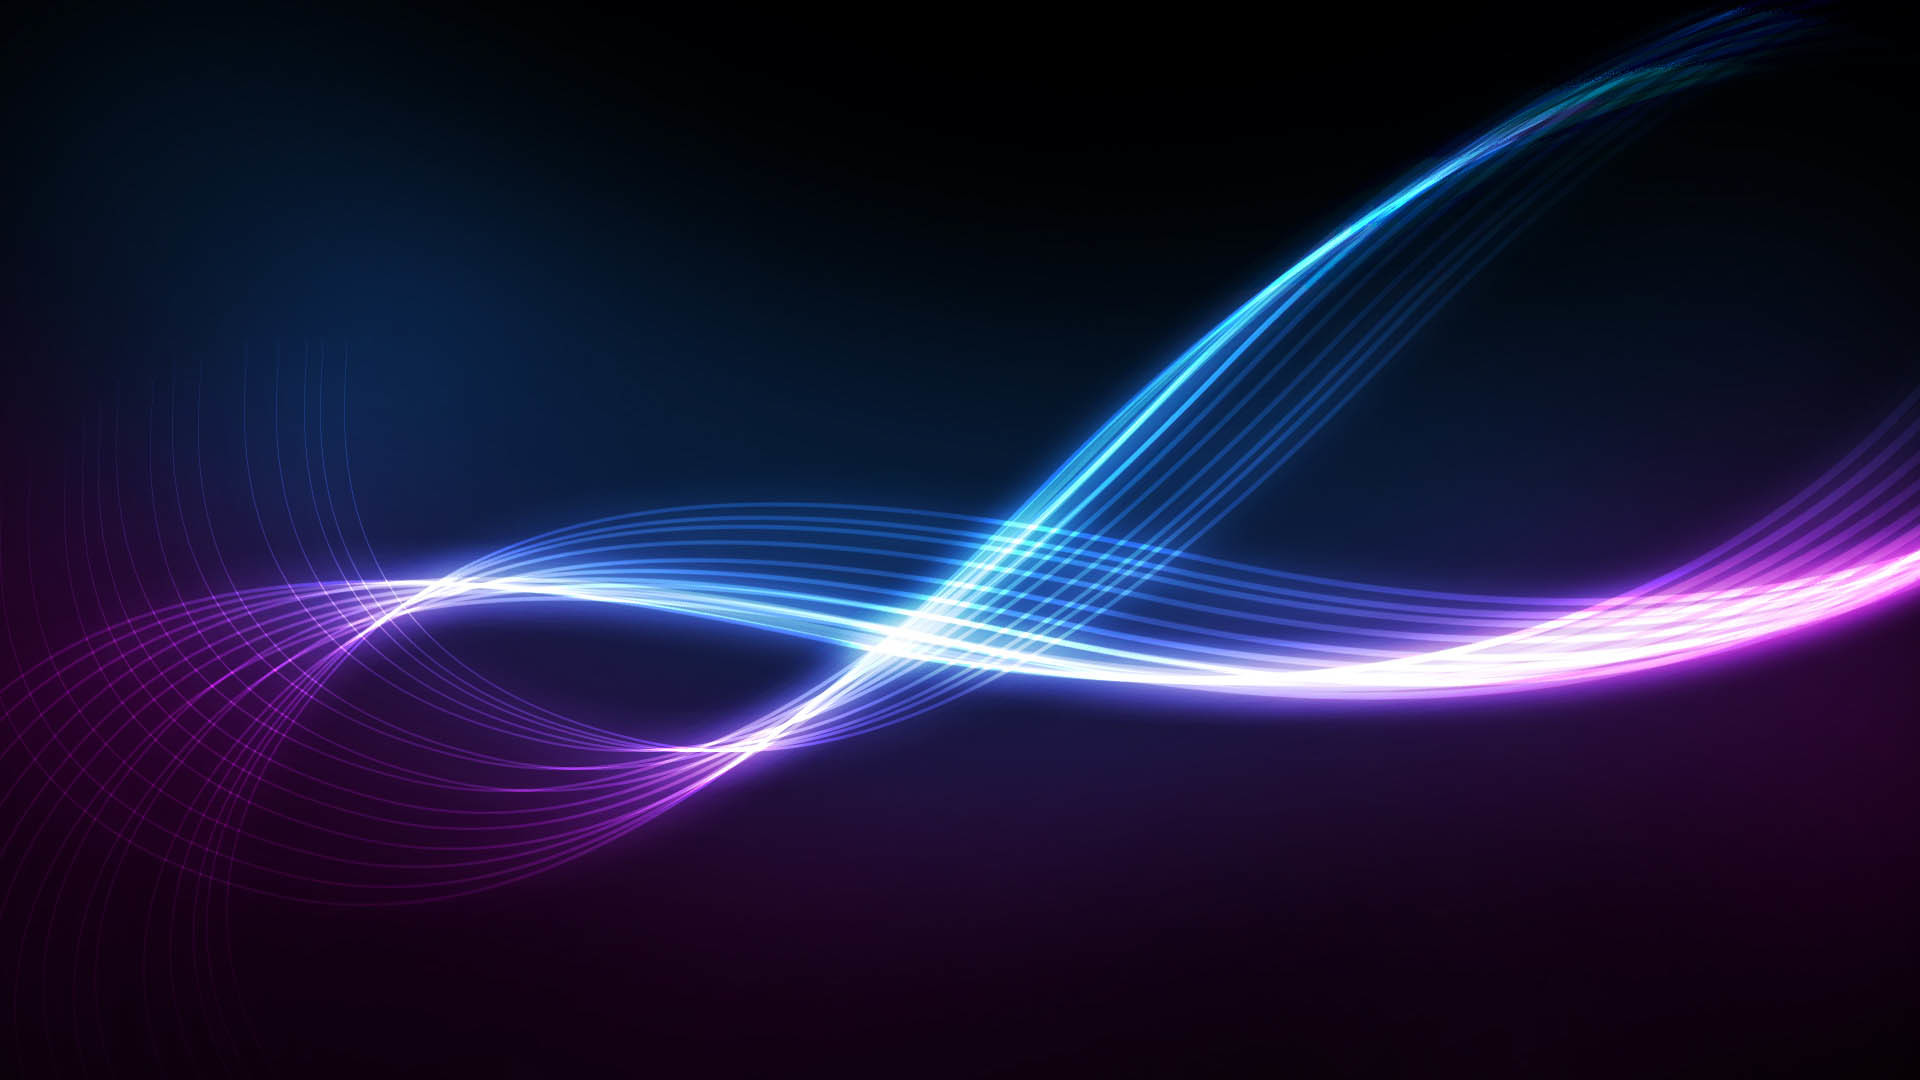 Hd Abstract Wallpapers Download Glow Background 84852